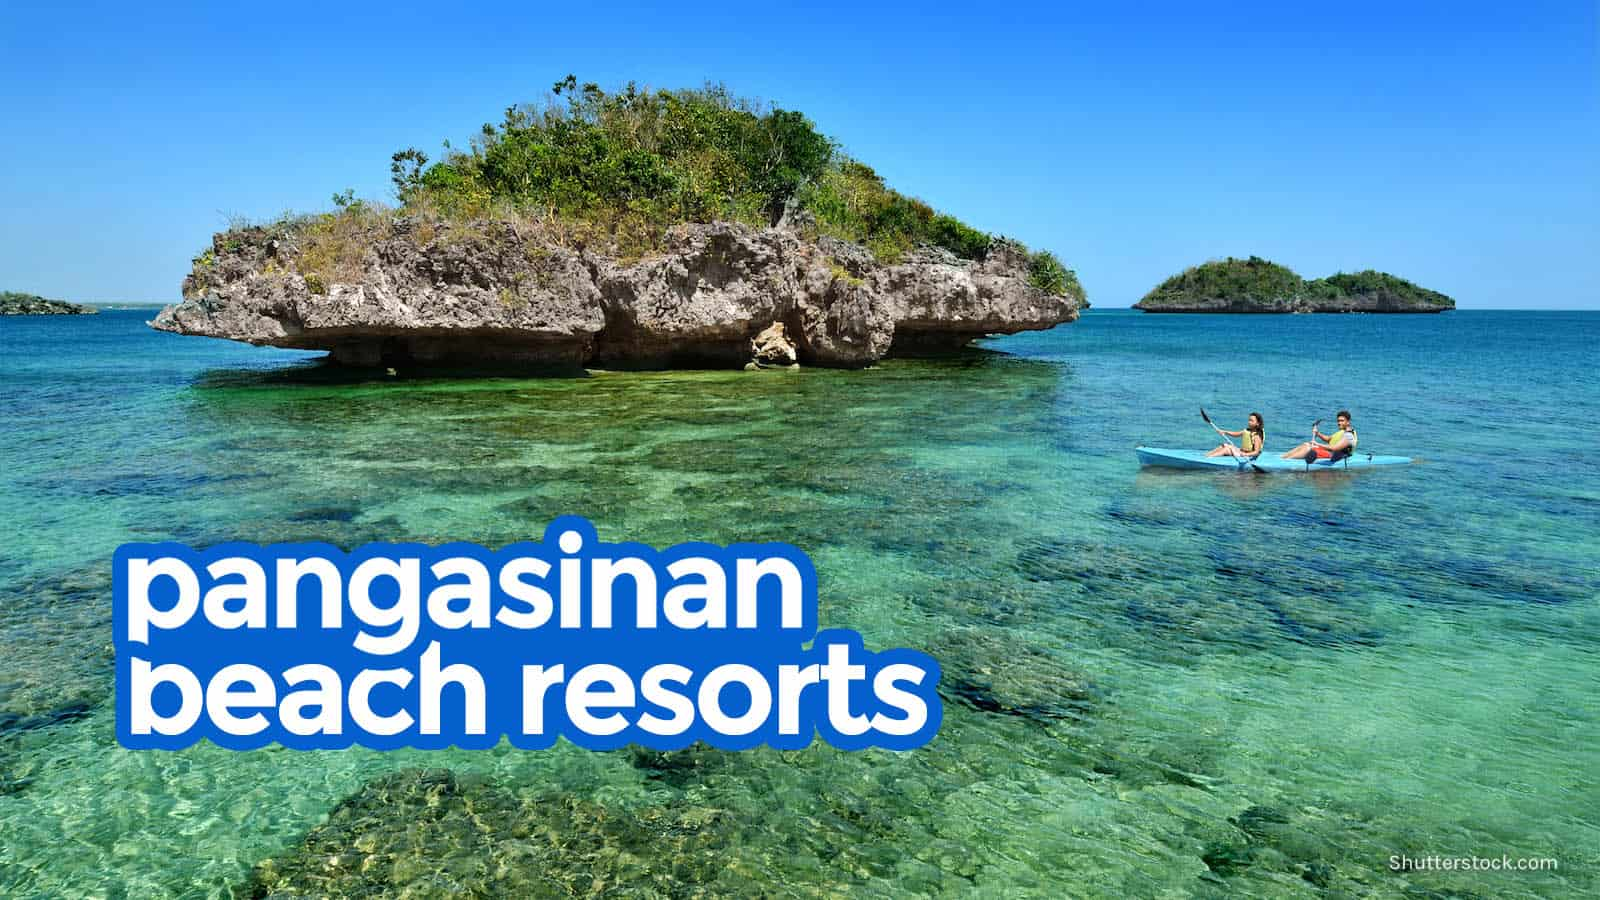 TOP 10 PANGASINAN BEACH RESORTS 2020